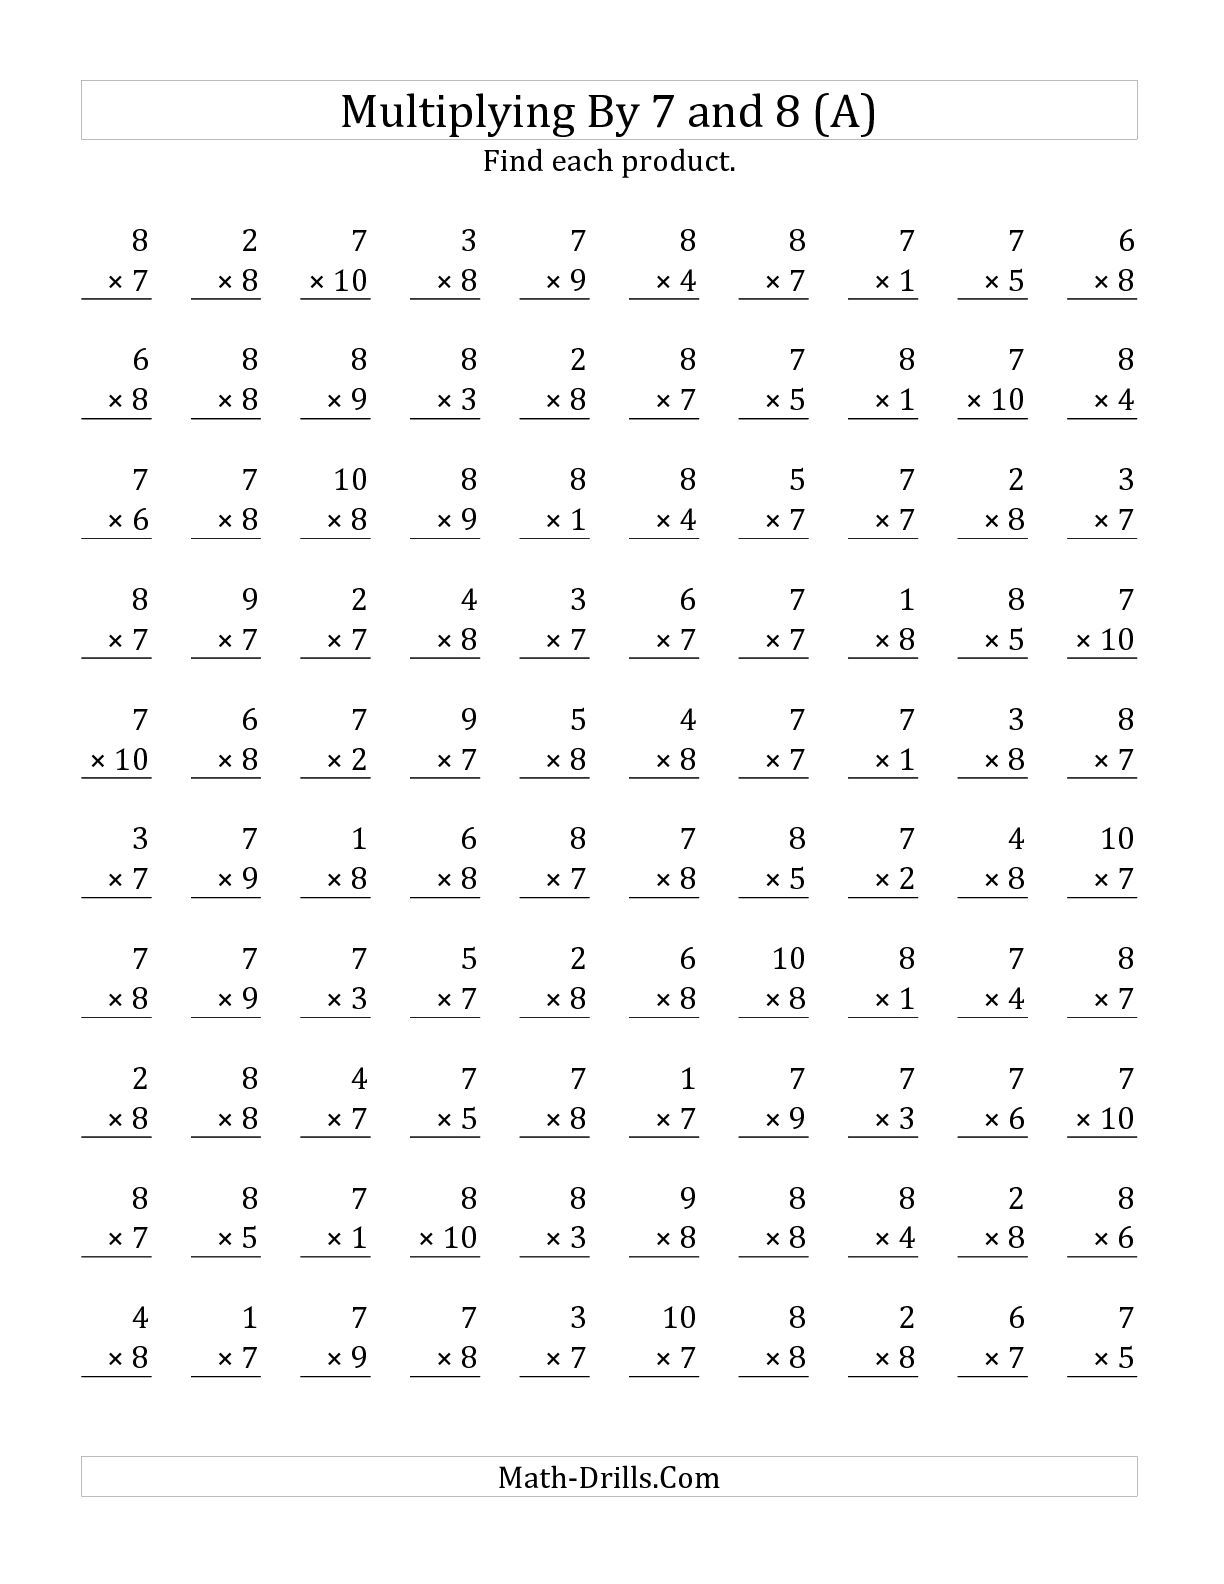 Worksheets Timed Math Facts Worksheets the multiplying 1 to 10 by 7 and 8 a math worksheet from 12 6 c worksheet